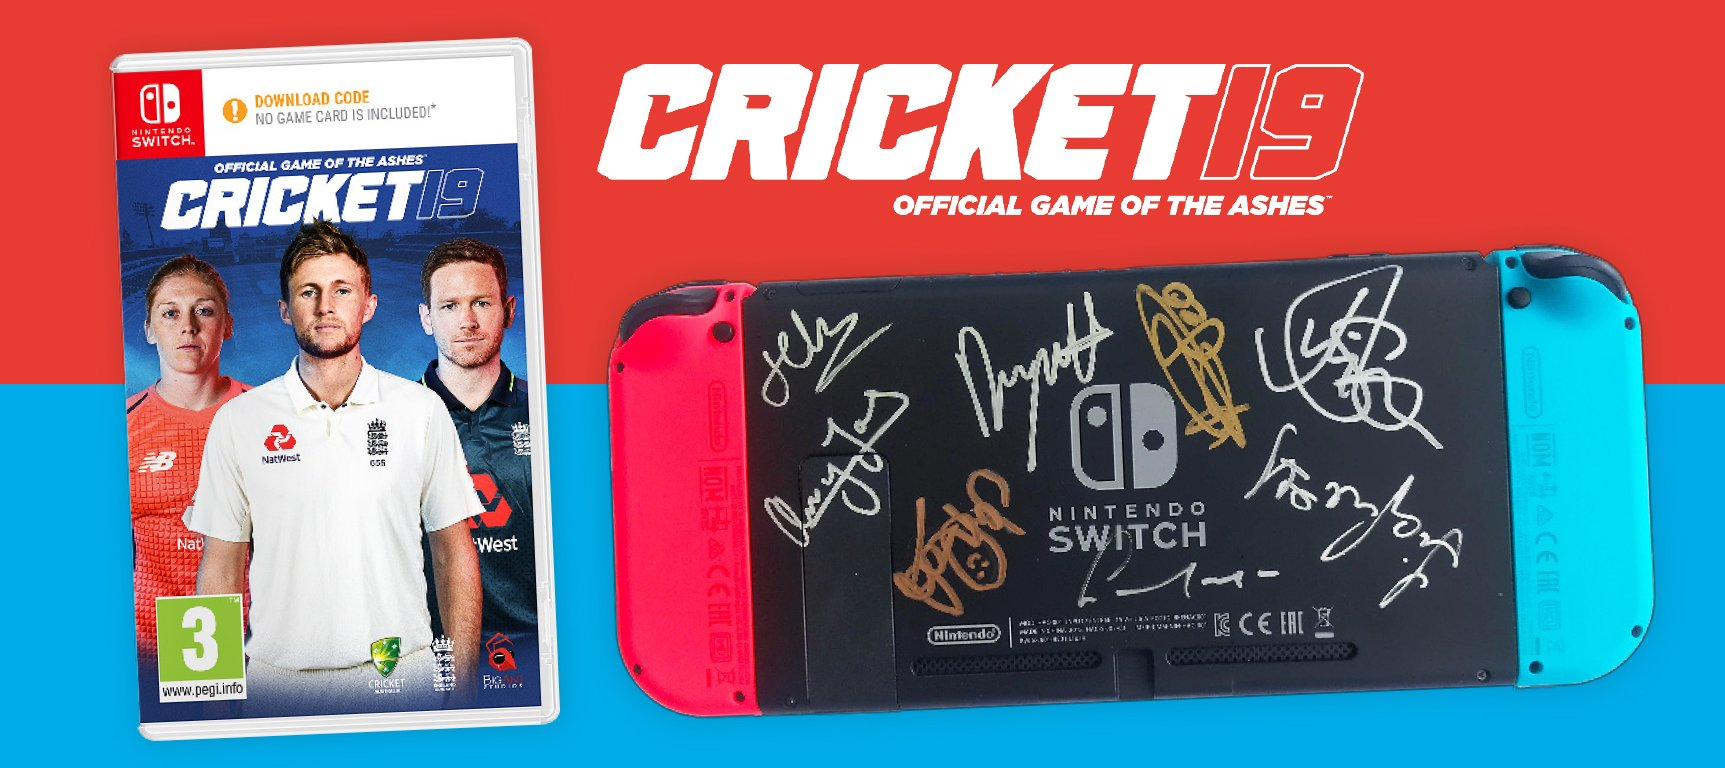 Cricket 19 Game Plus A Nintendo Switch Signed by the England Team